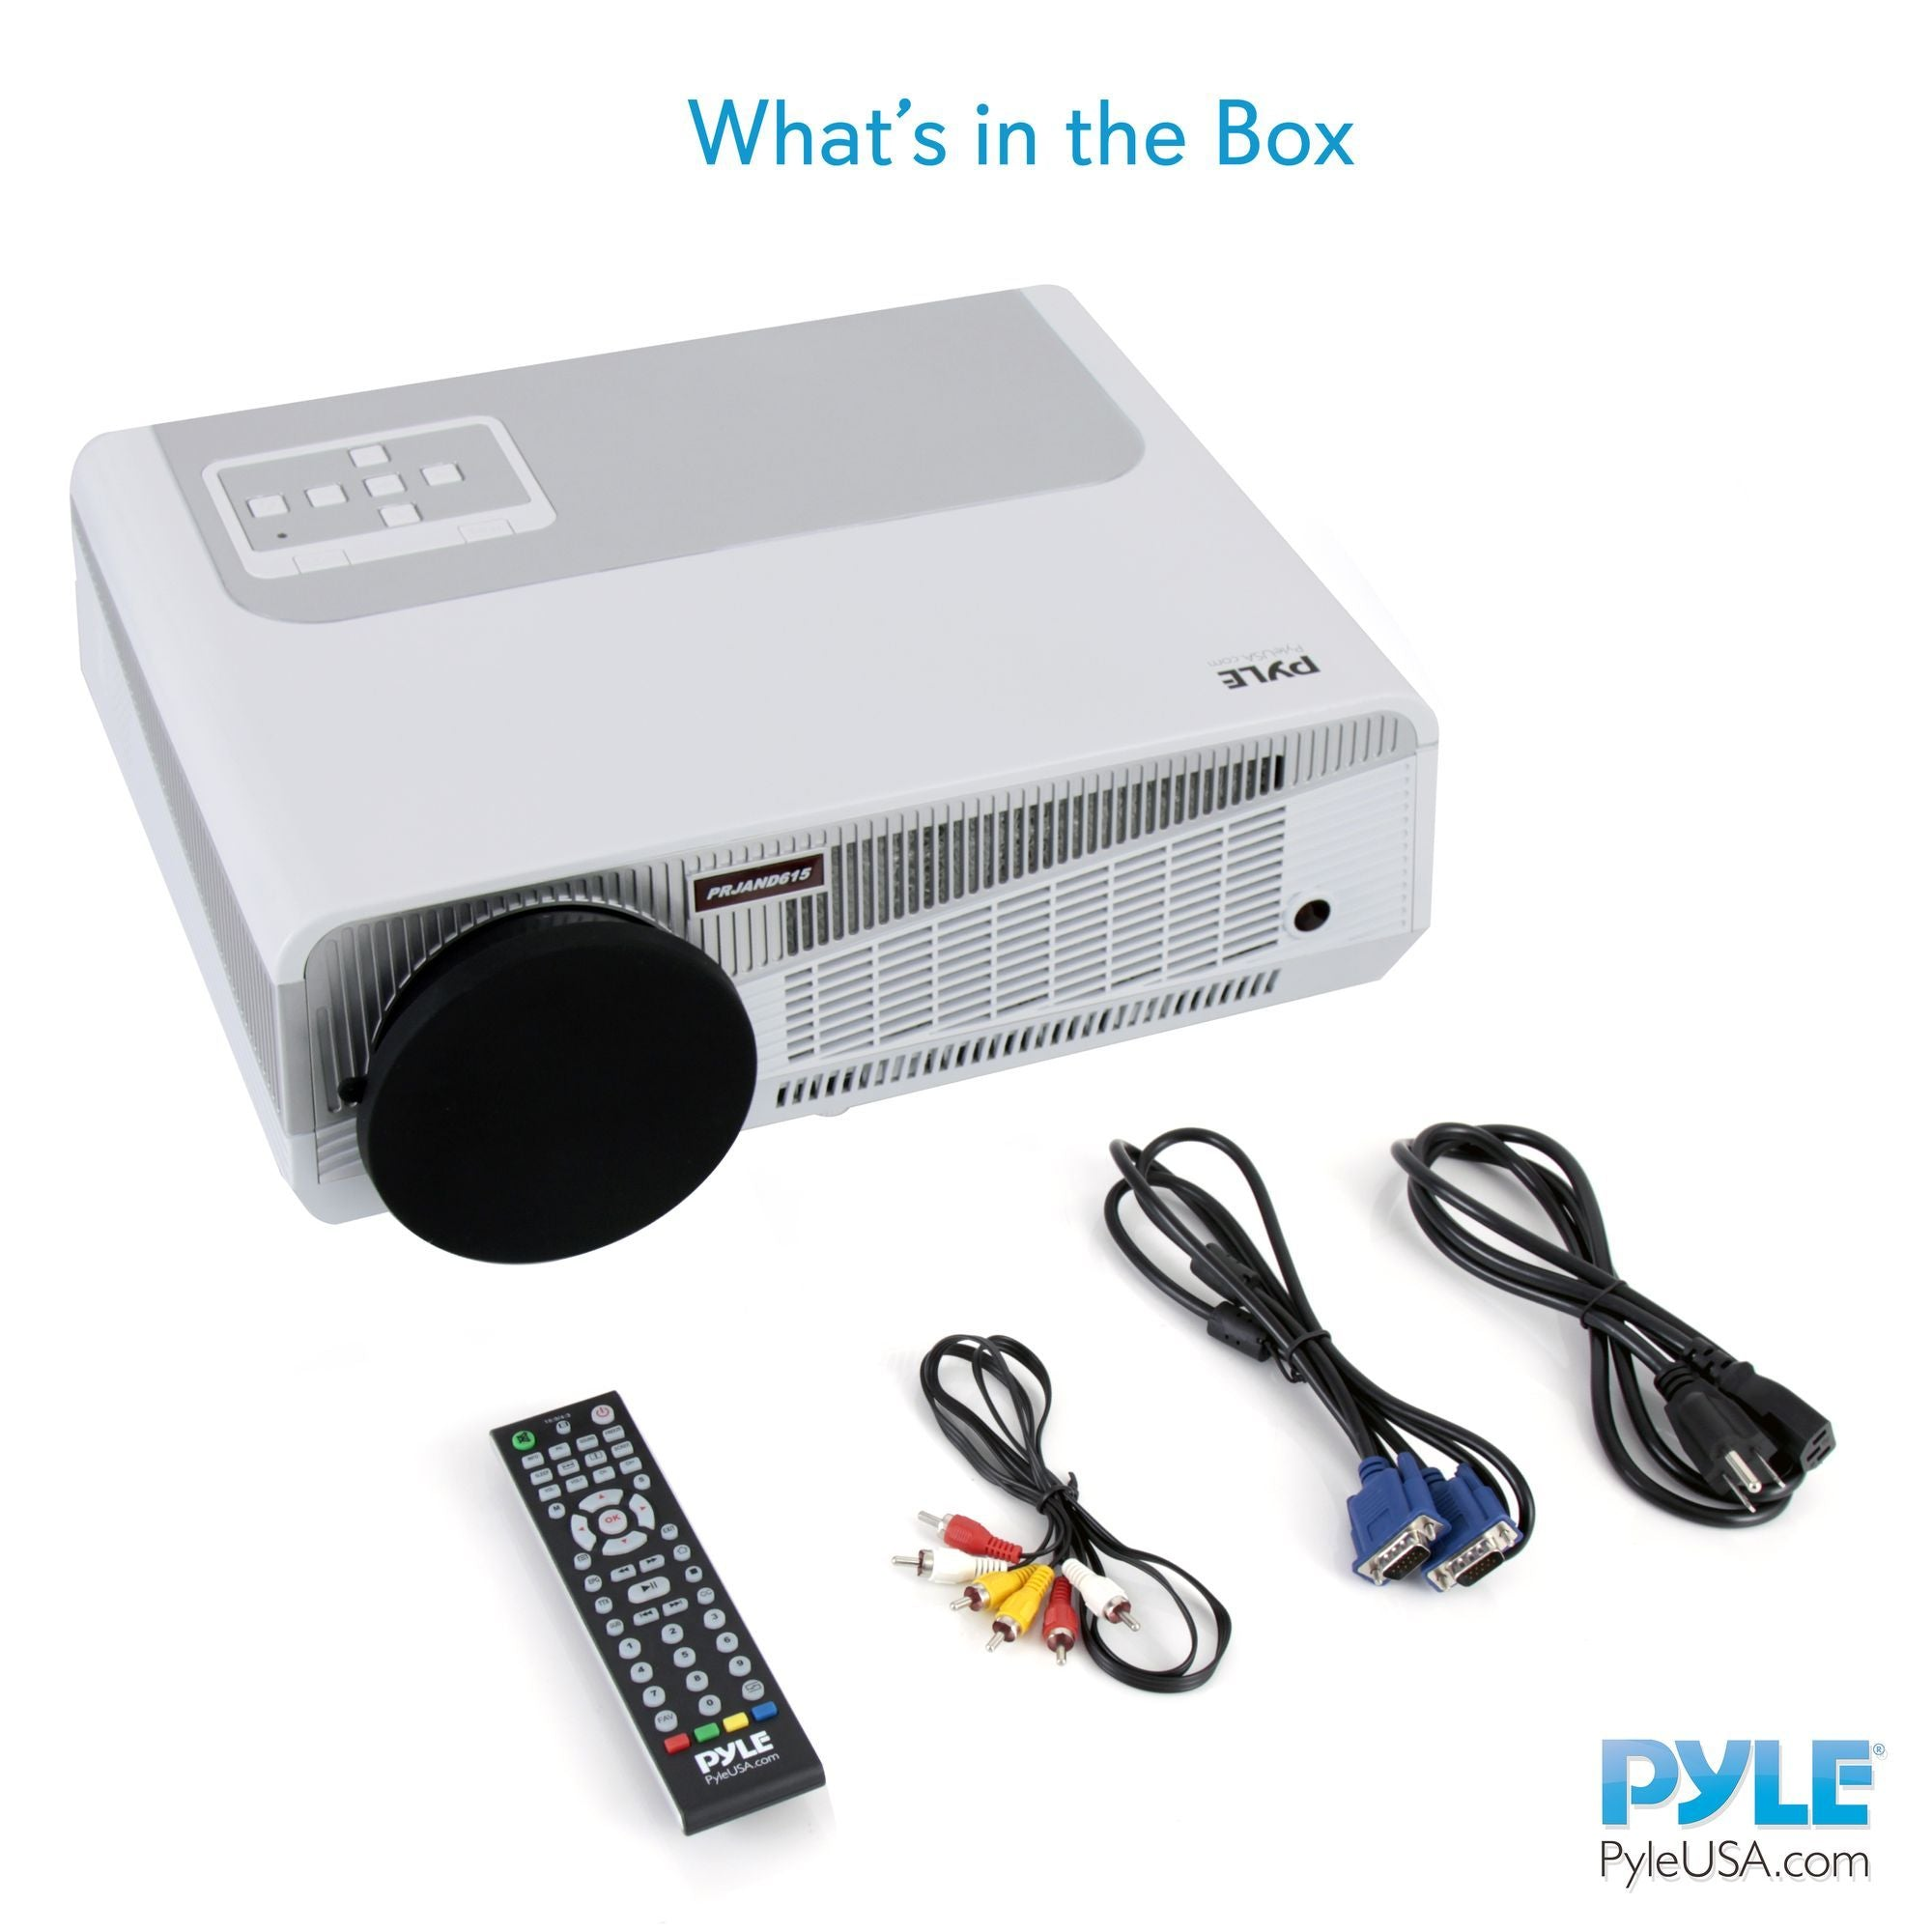 PyleHome HD Hi-Res Smart Projector with Built-in Dual Core Android CPU, High Speed Wi-Fi Wireless Internet, 1080p & Blu Ray Disc Support, Projection Size up to 120 -inches (PRJAND615)